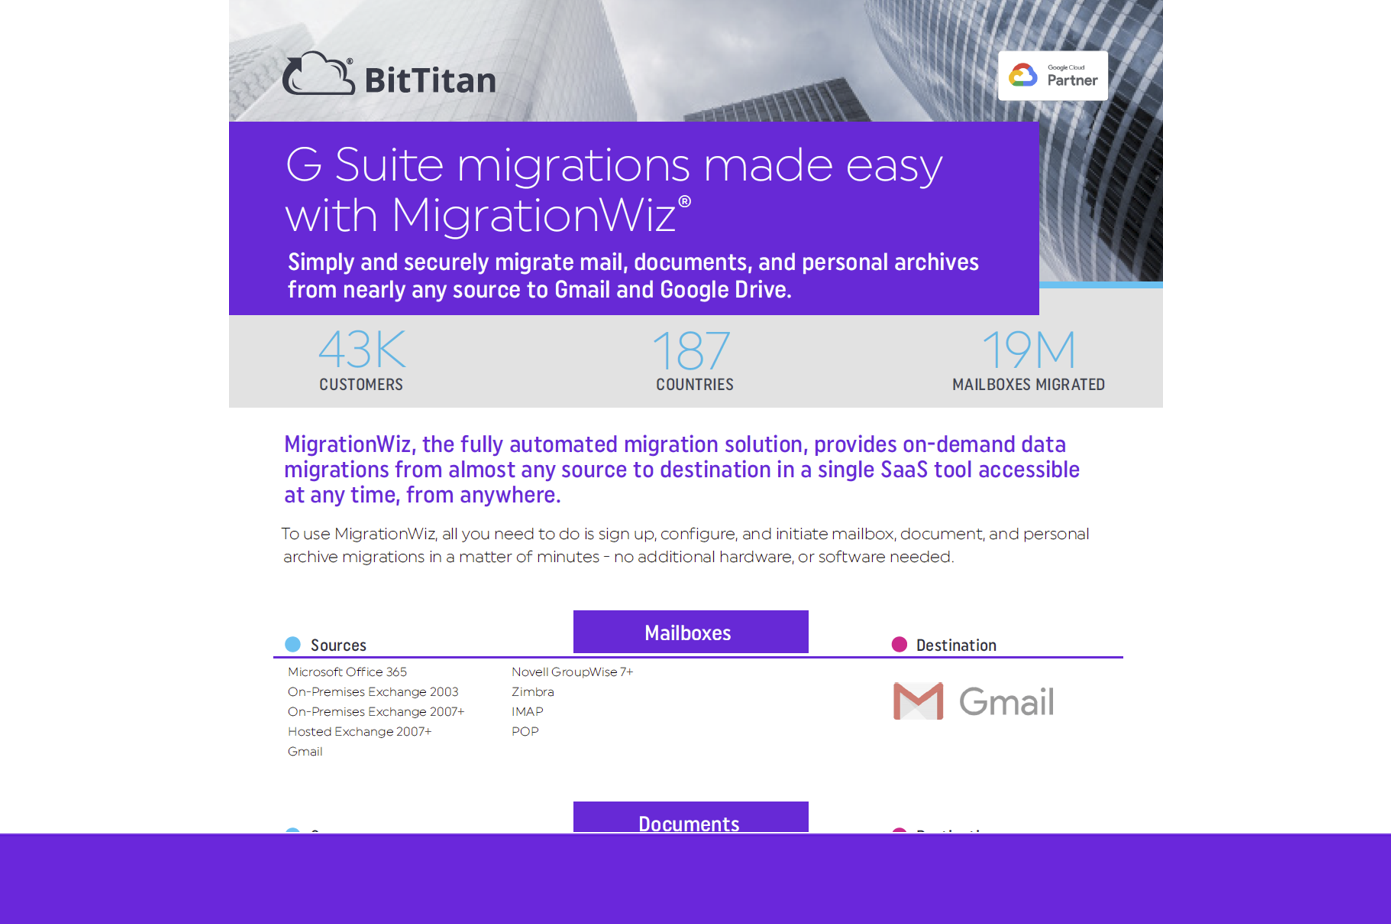 MigrationWiz Destination: G Suite